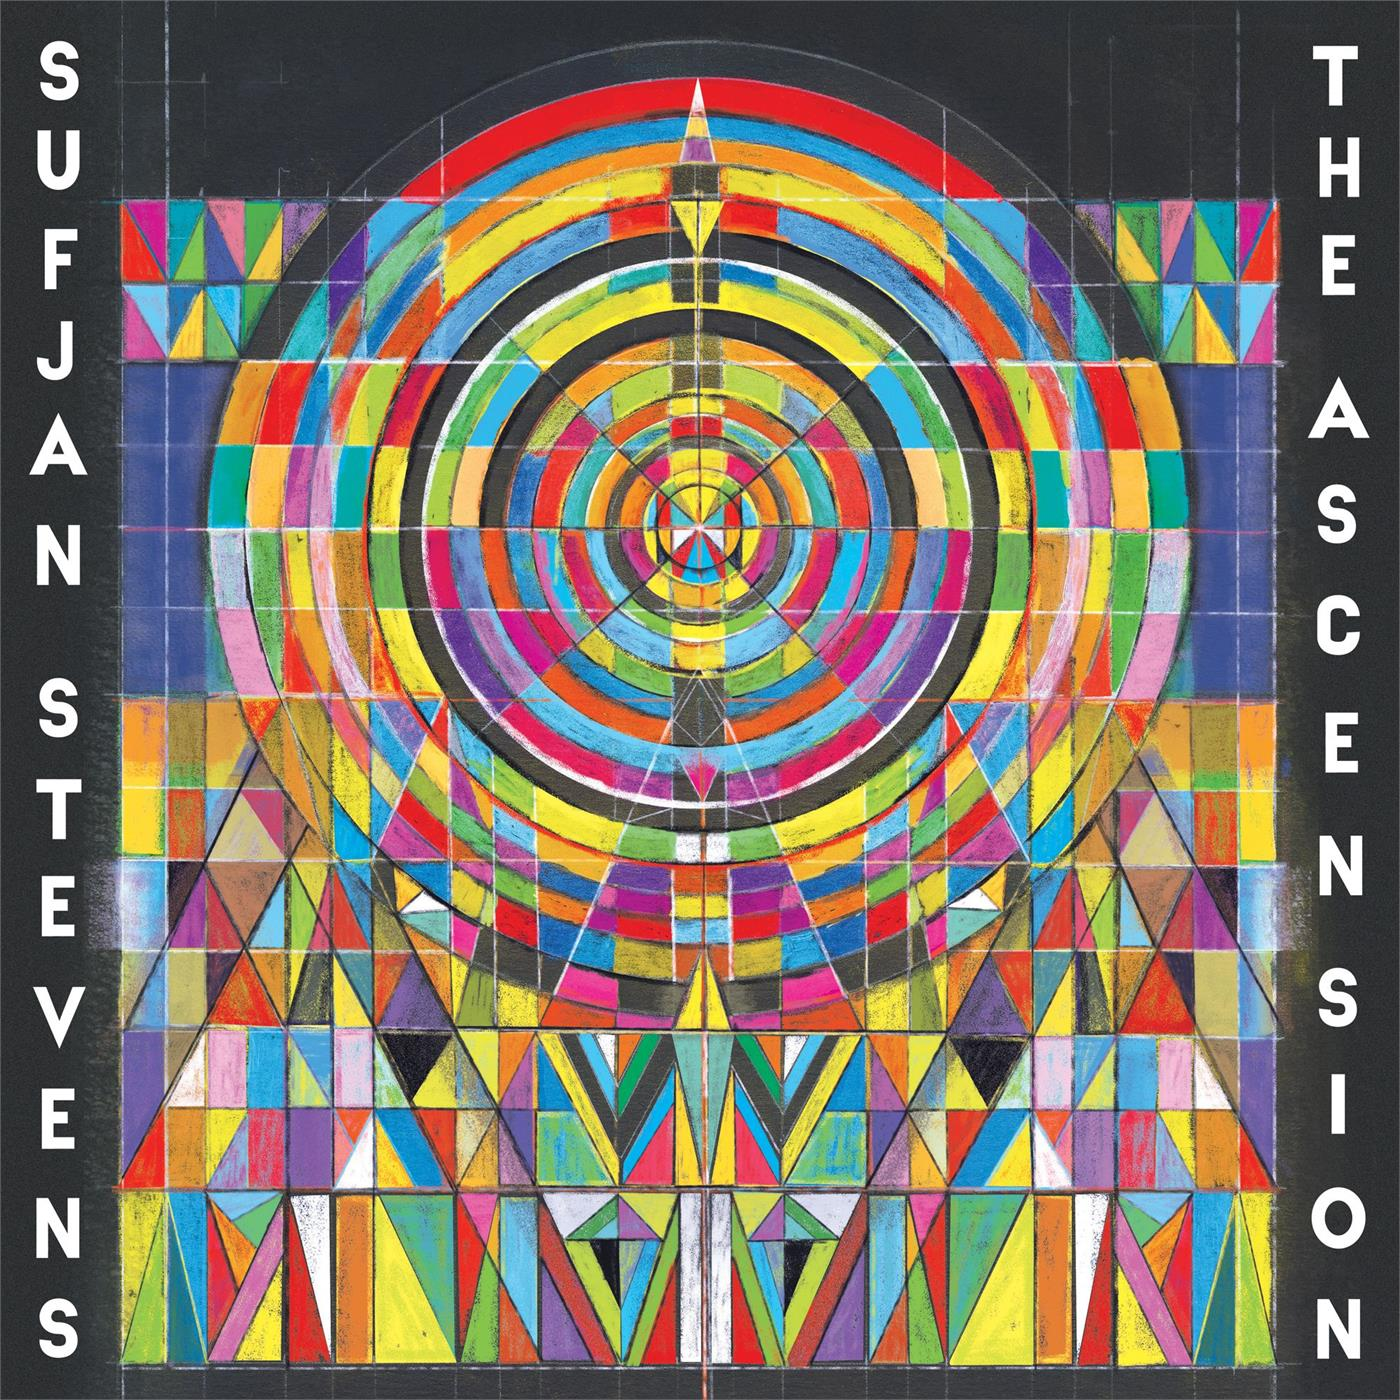 Sufjan Stevens - The Ascension [LTD LP] (Clear vinyl)